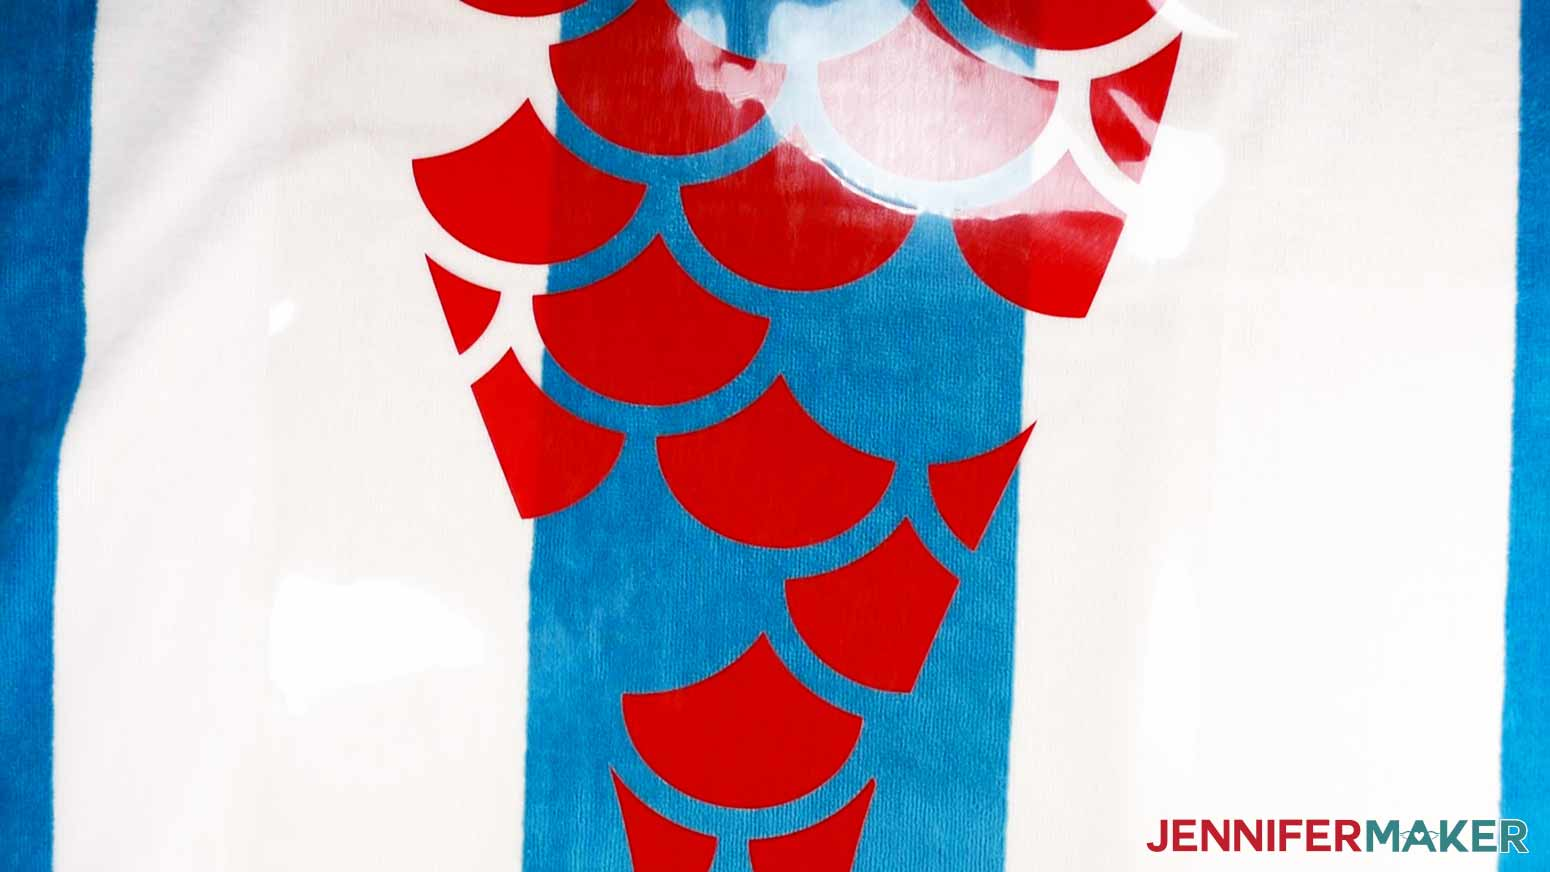 Aligning the Red Iron-On layer of the Mermaid DIY Personalized Beach Towels